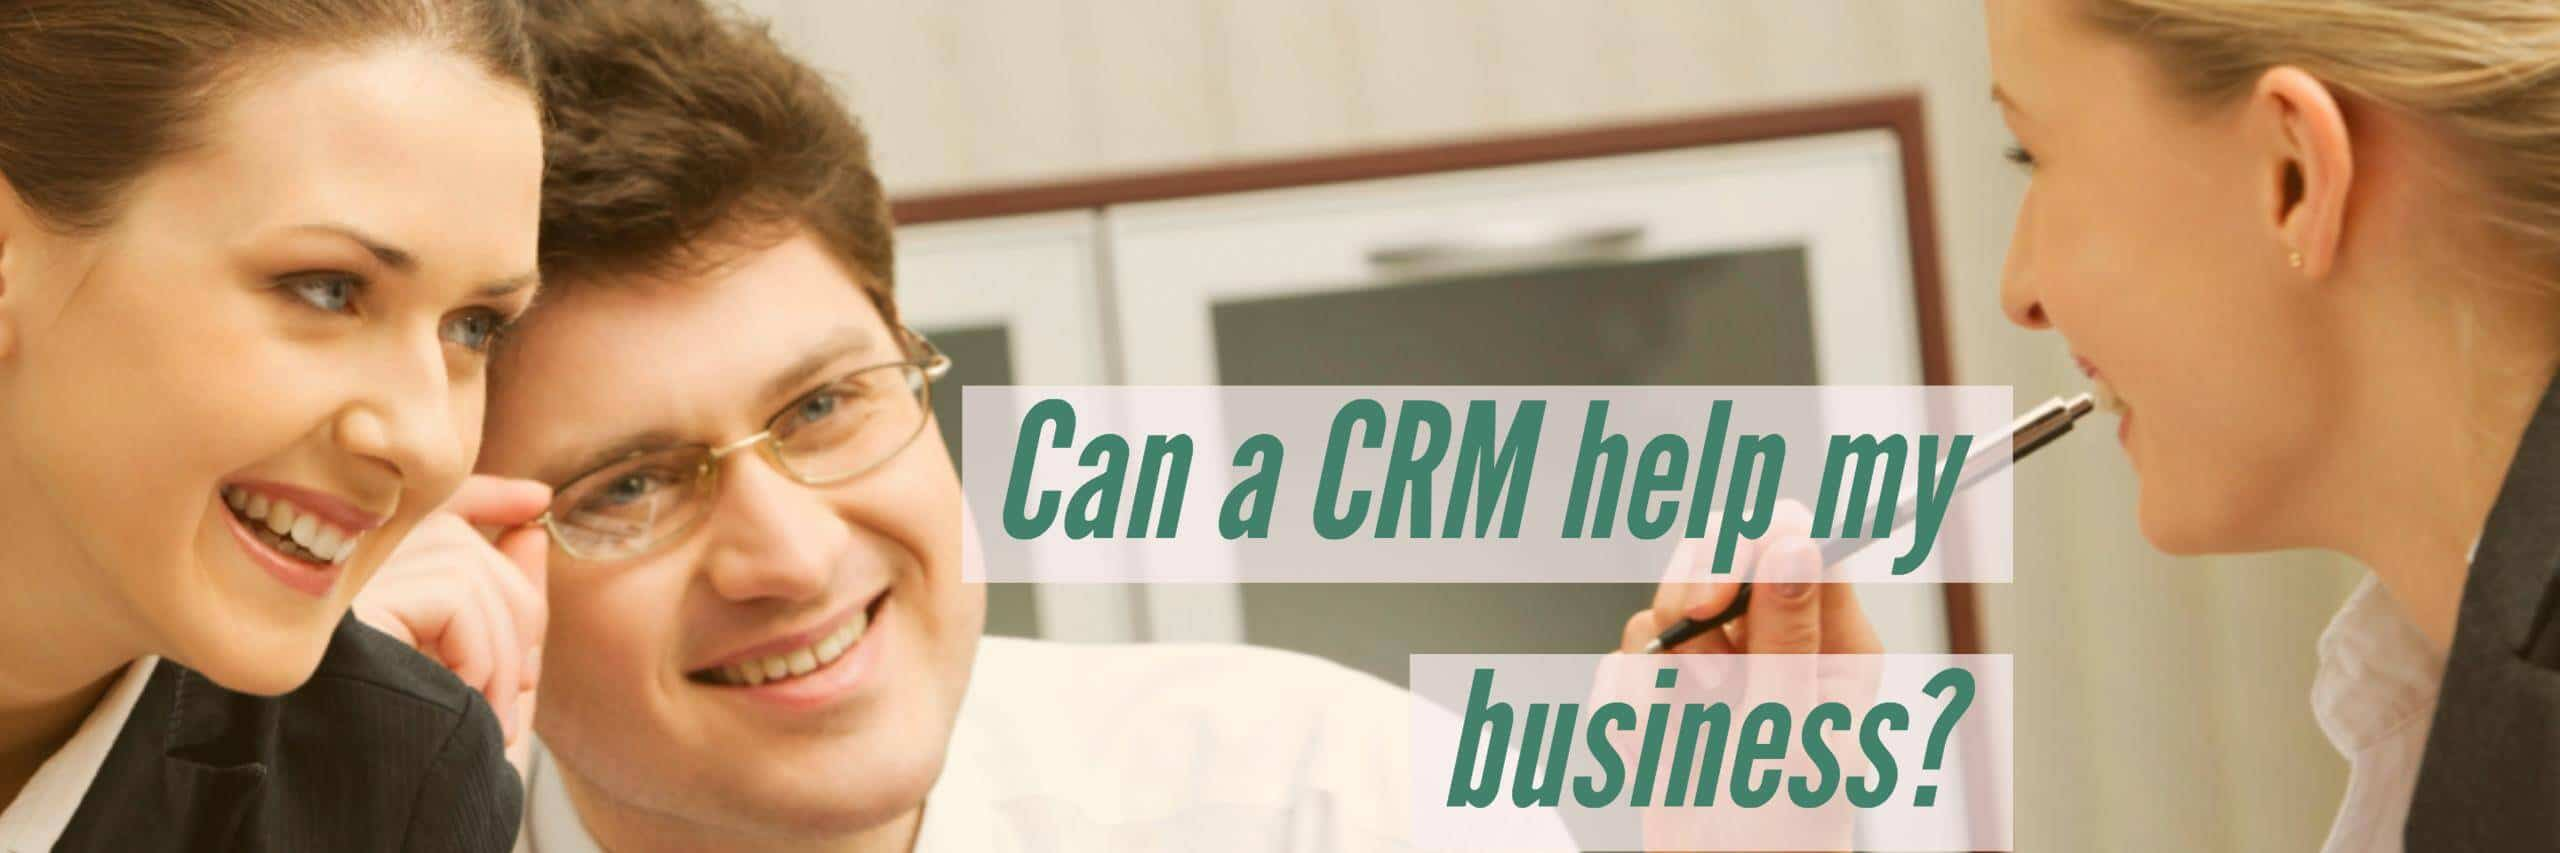 Can Your Business Benefit From a CRM?